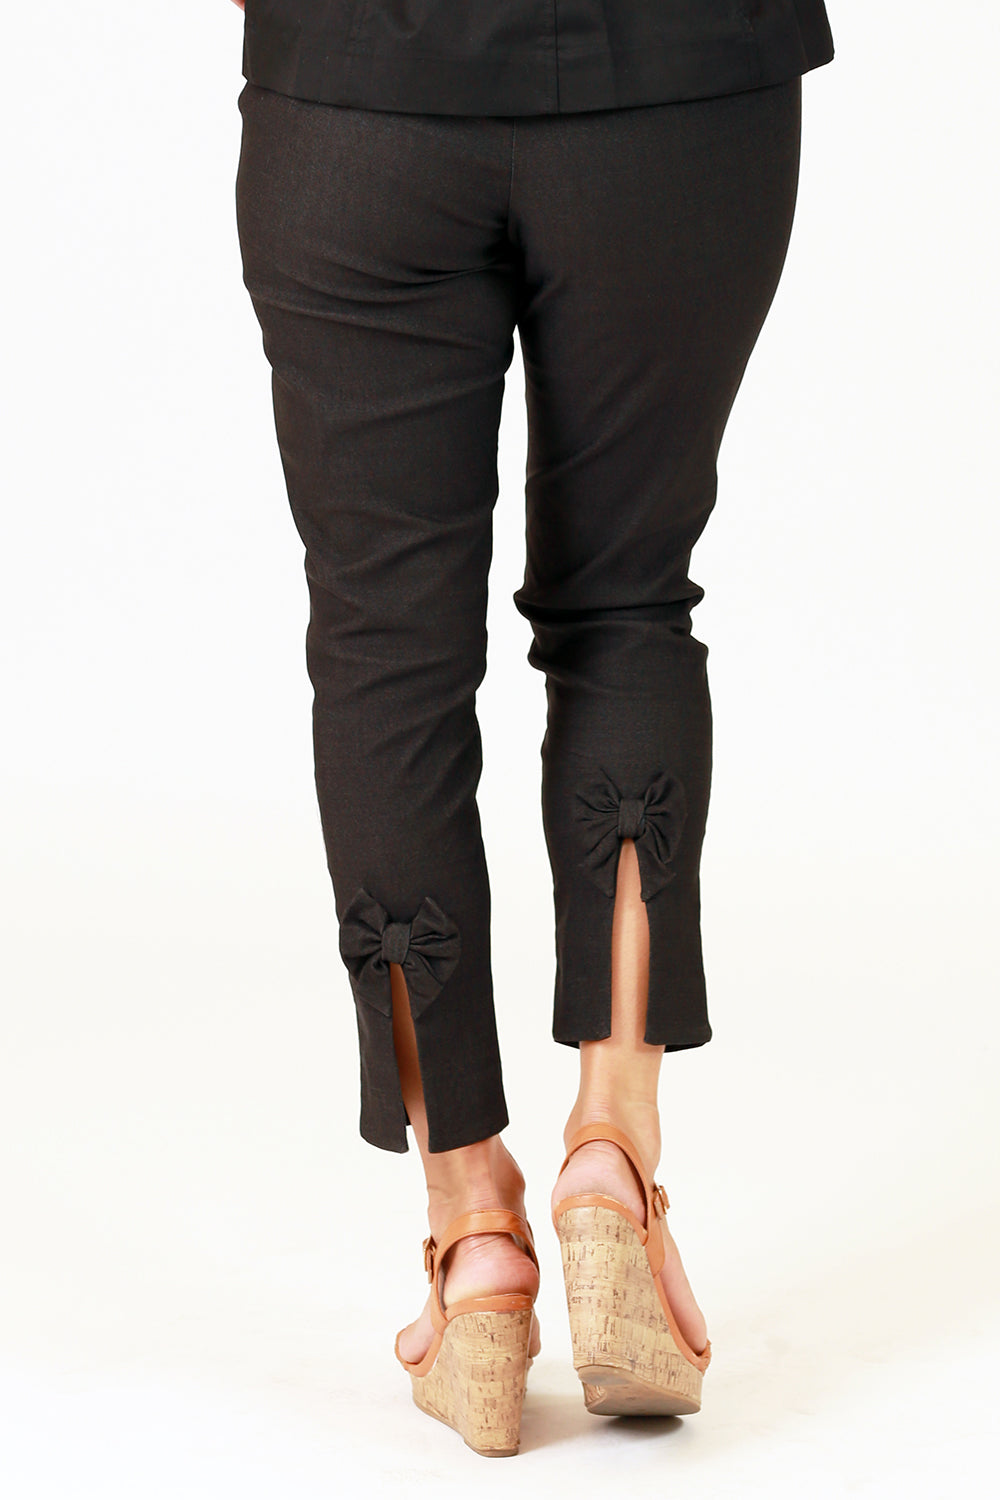 orbit alice grey stretch bow detail pants